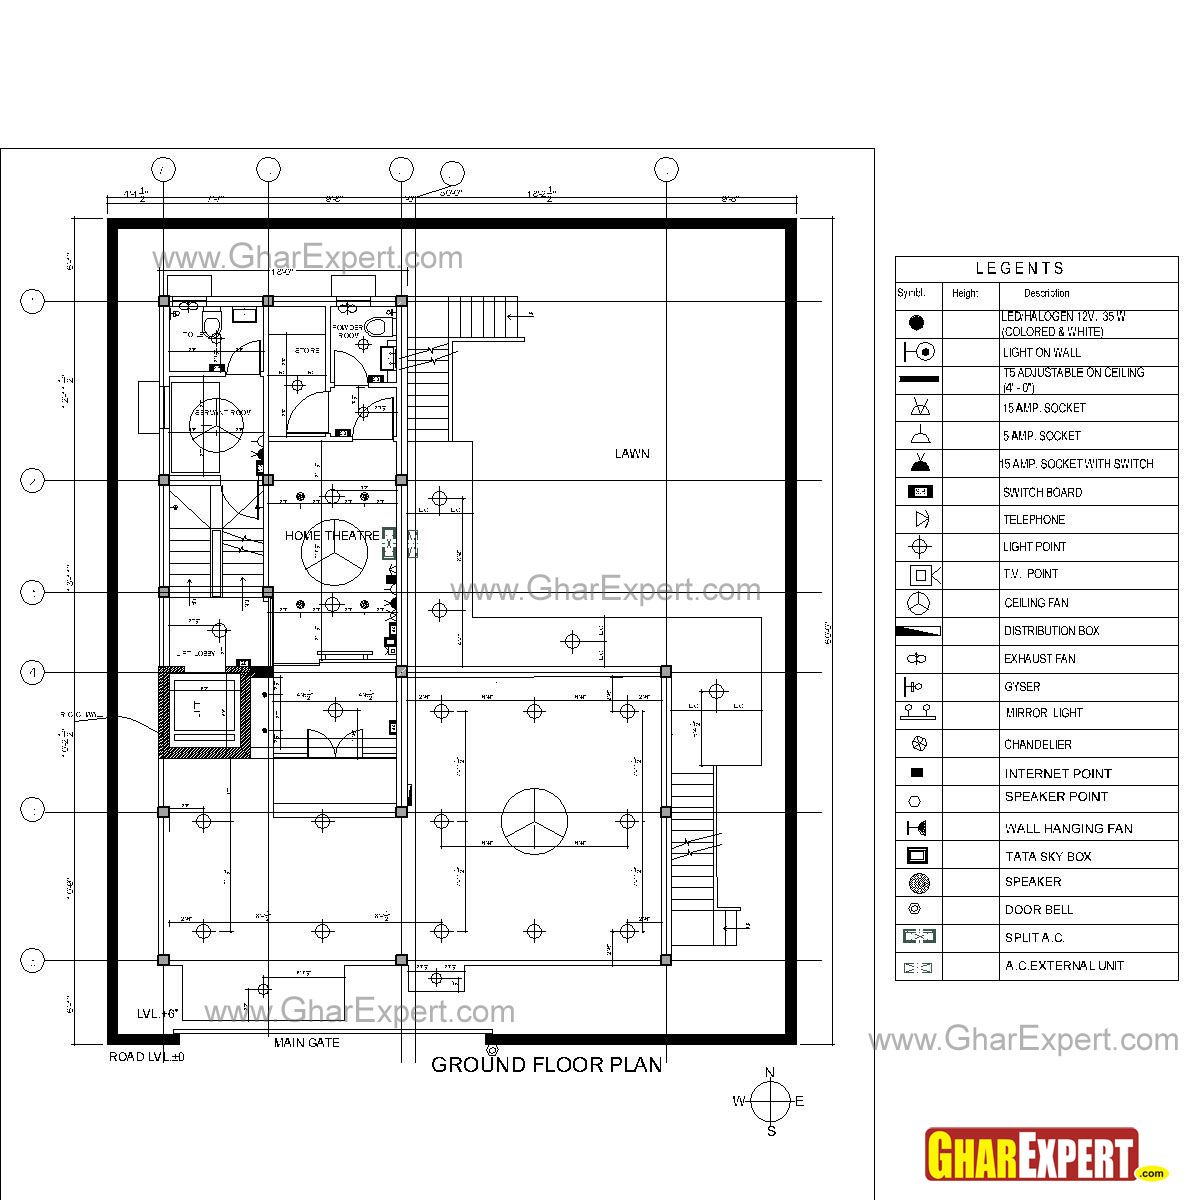 medium resolution of sample architectural structure plumbing and electrical drawings